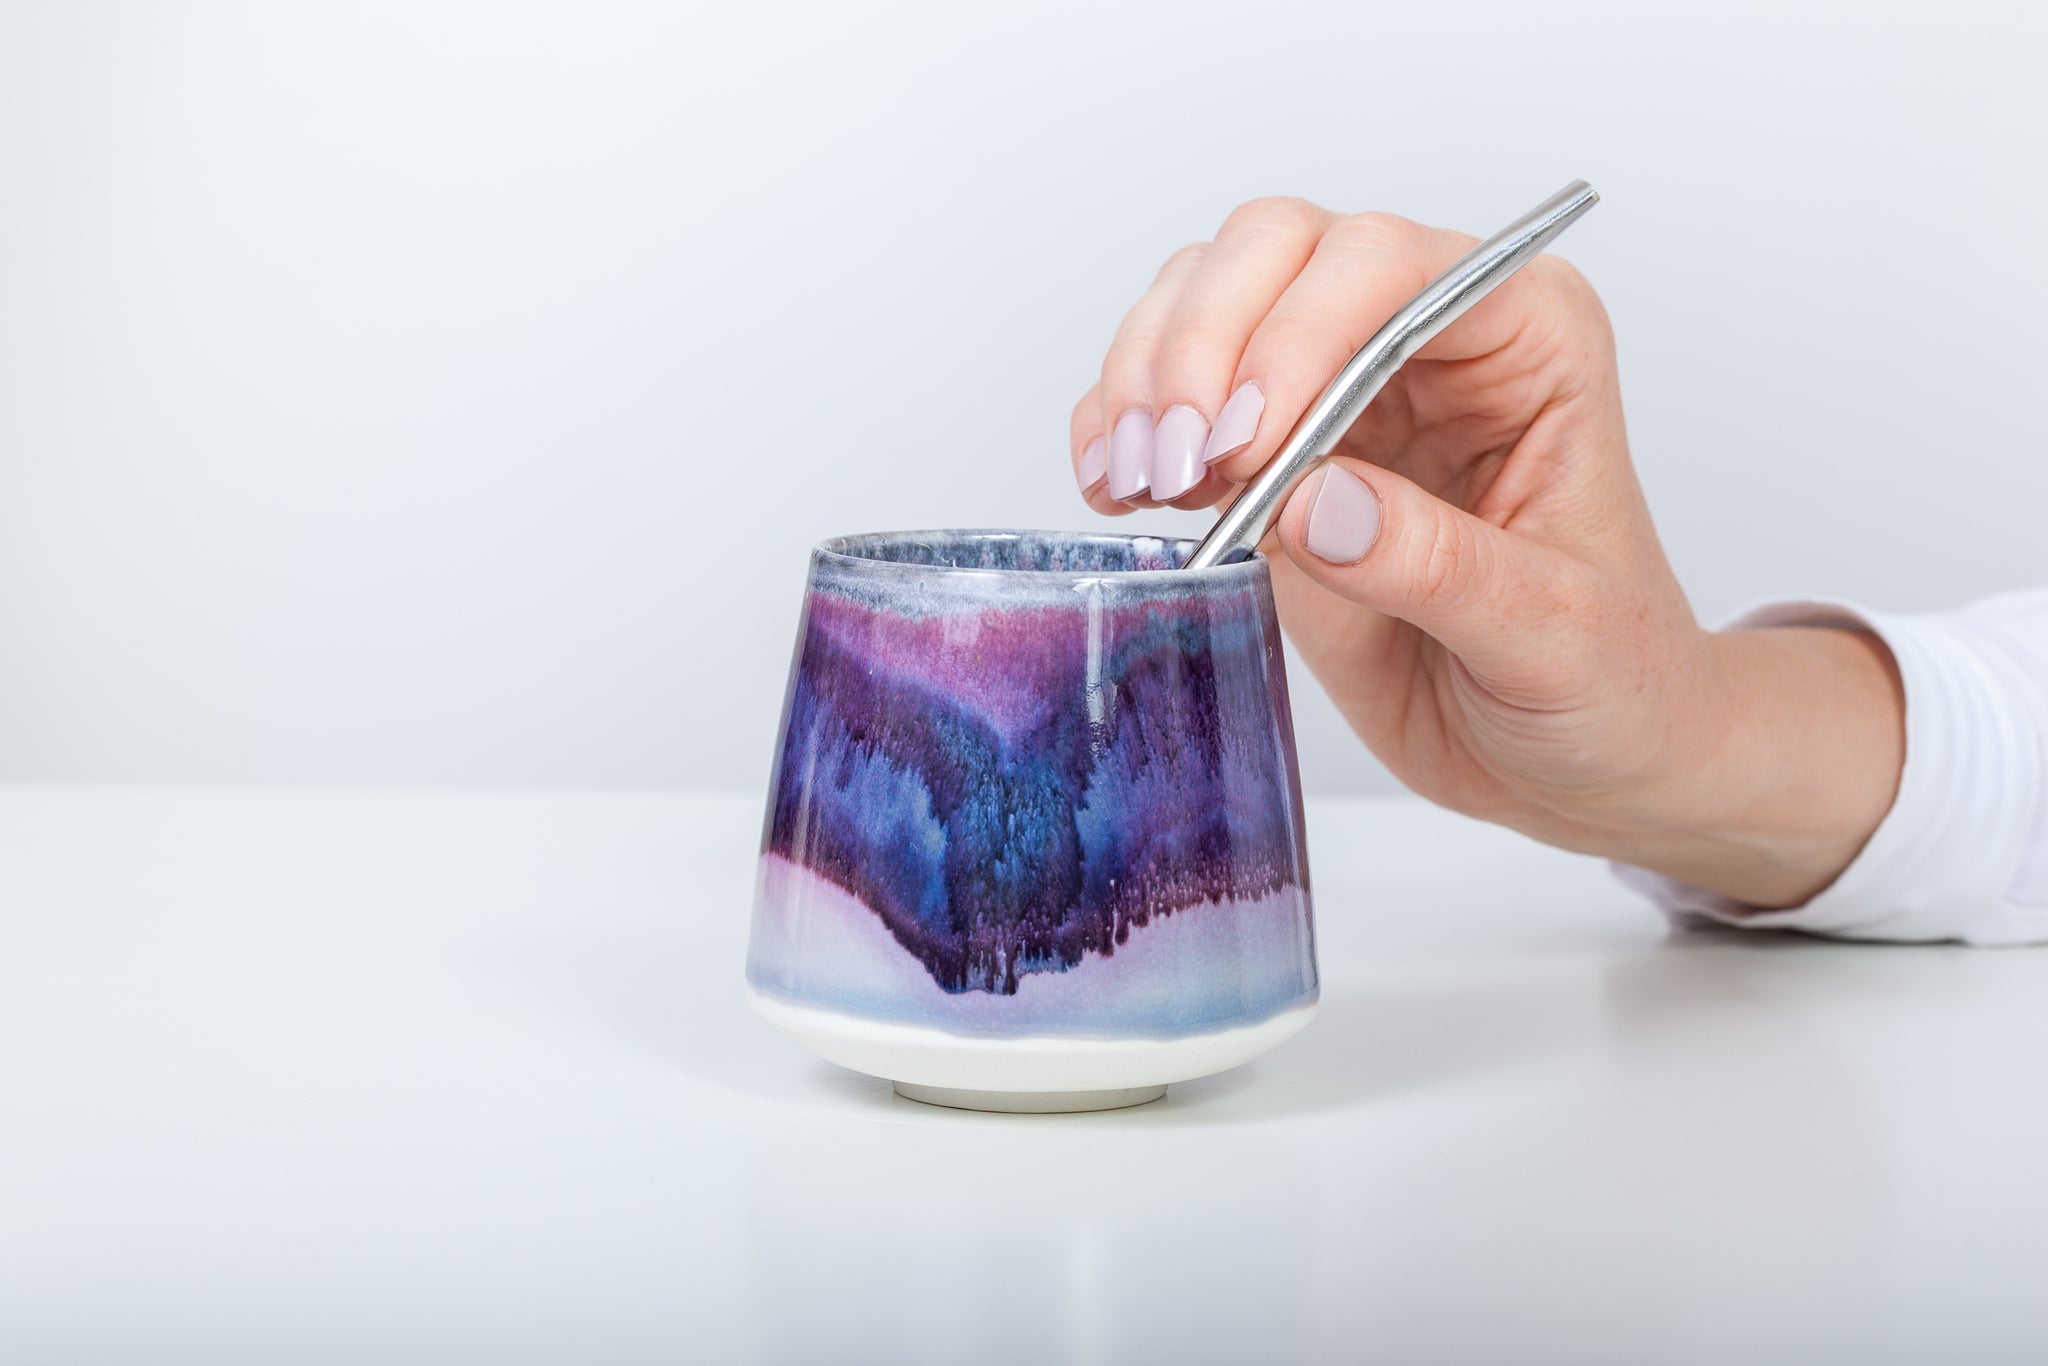 Simple maté cup, purple